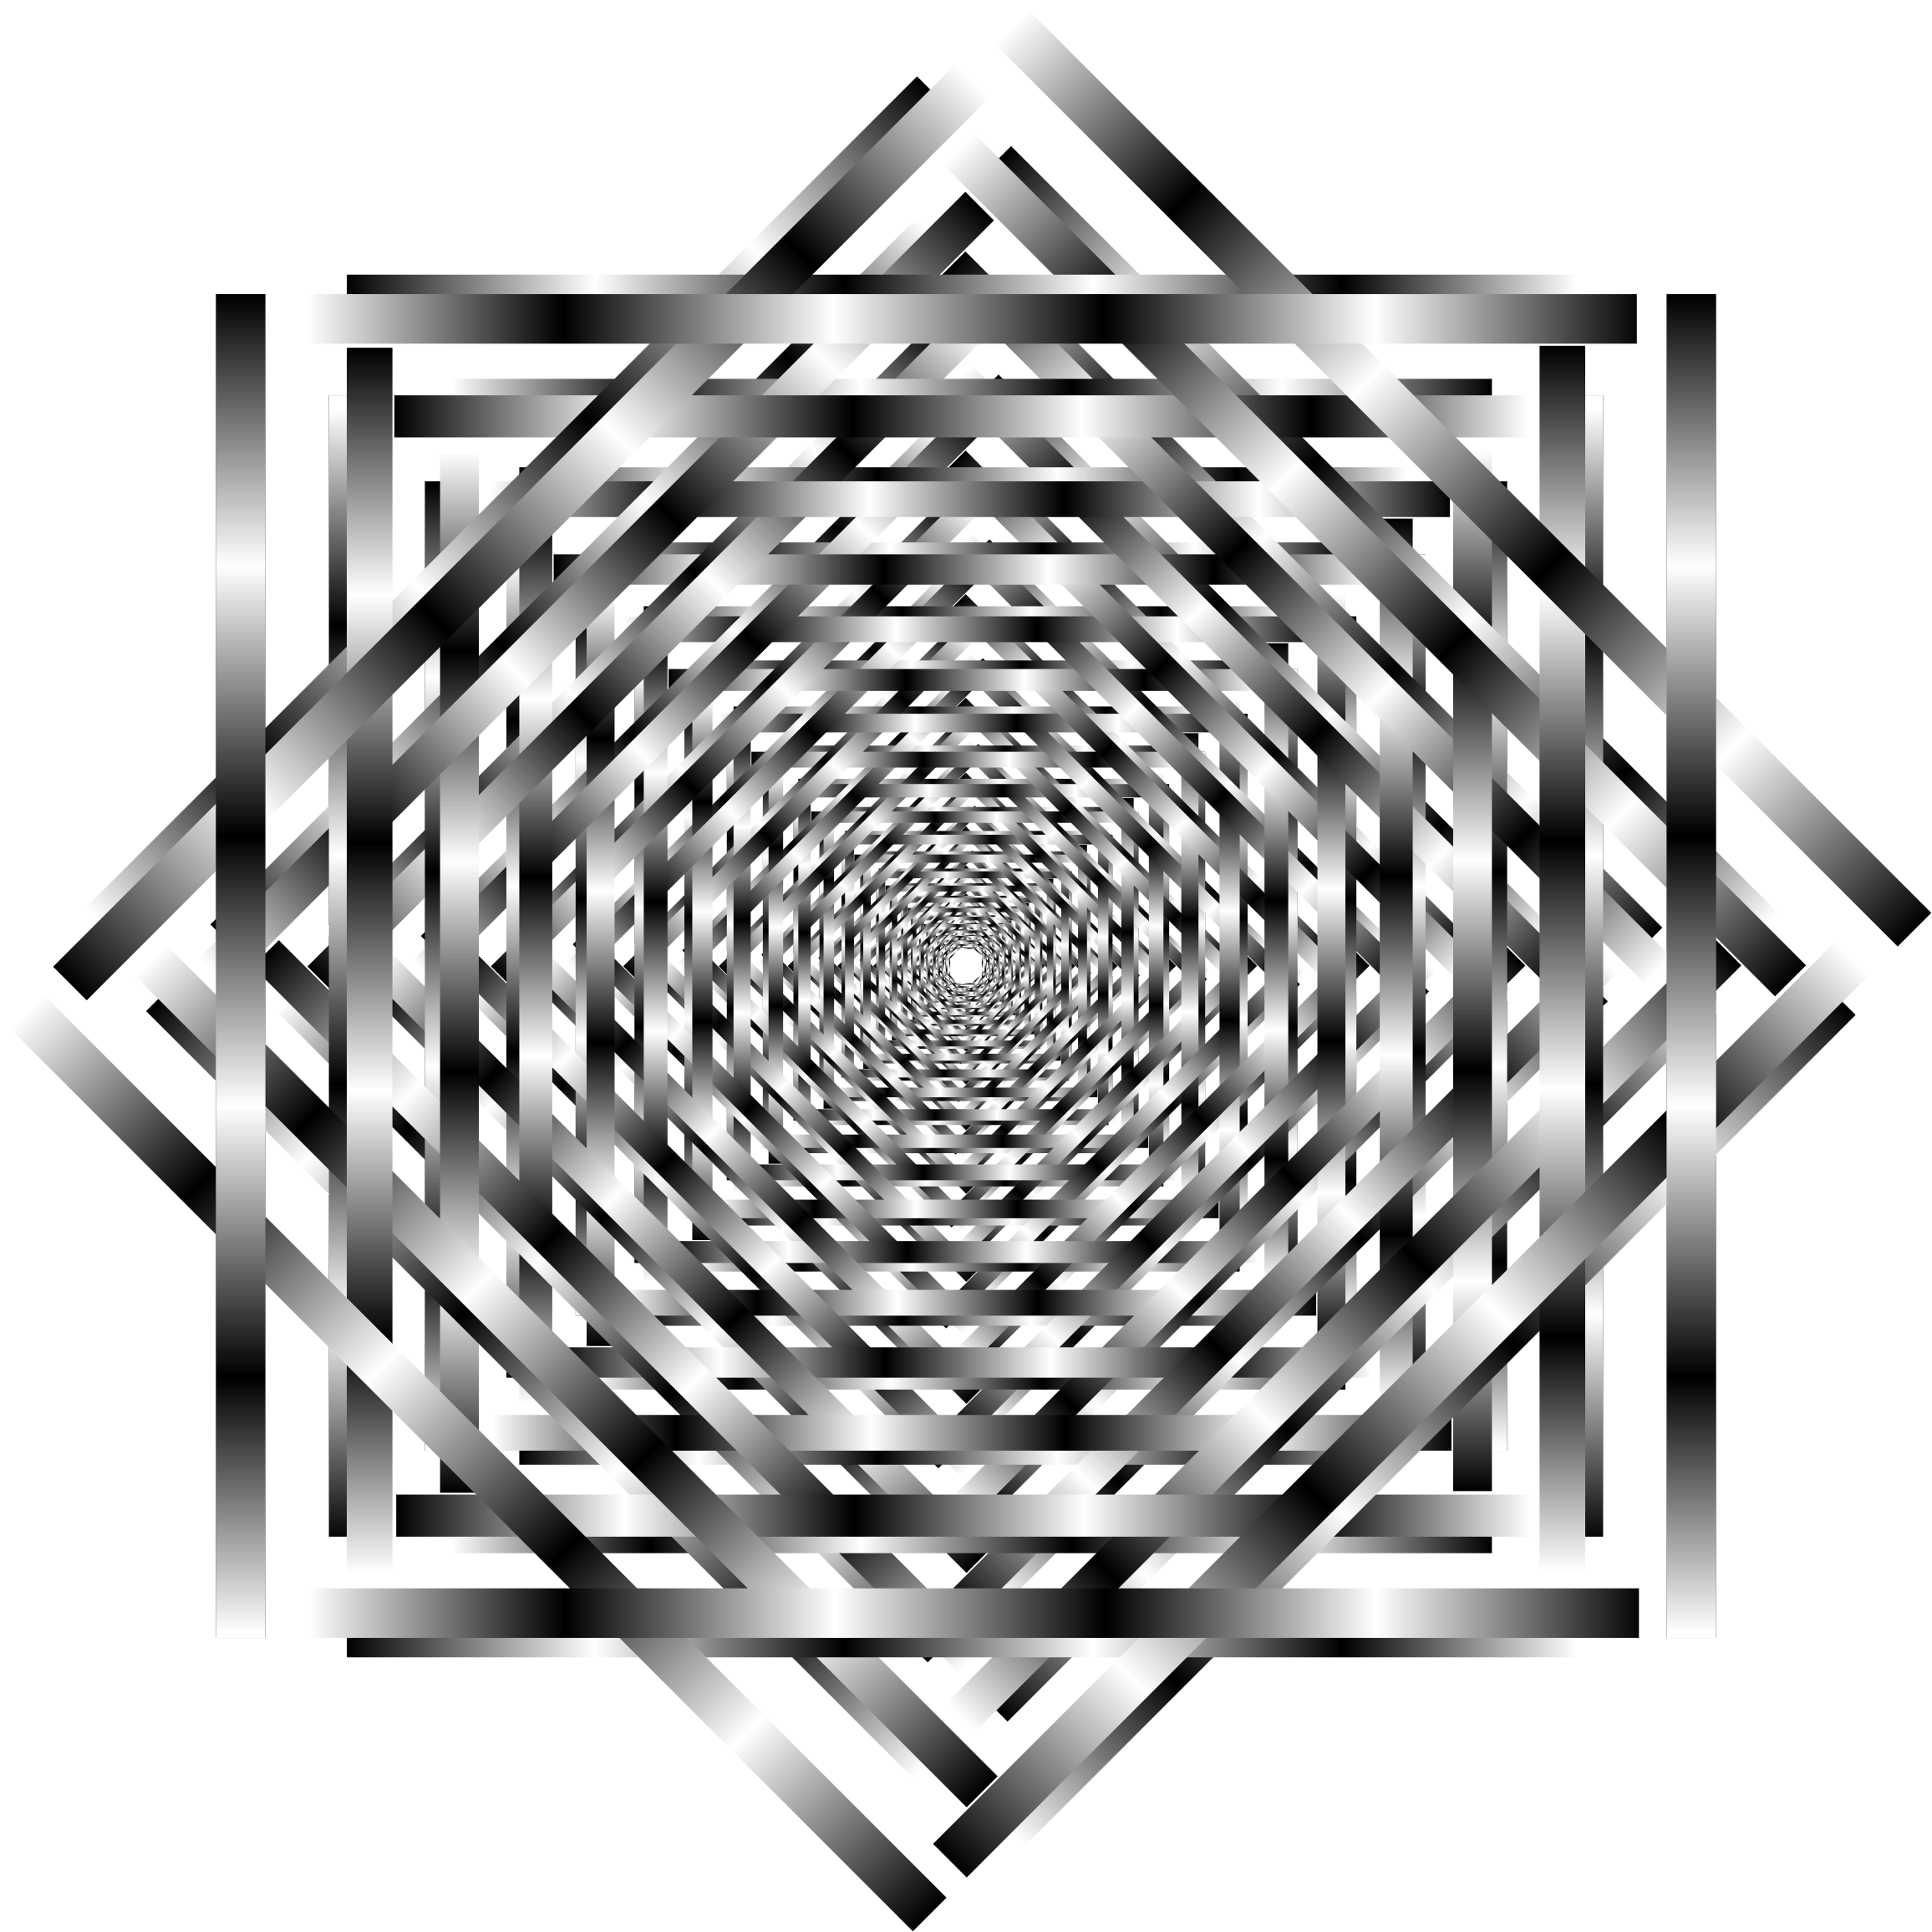 Interlocking Optical Illusion Vortex by GDJ